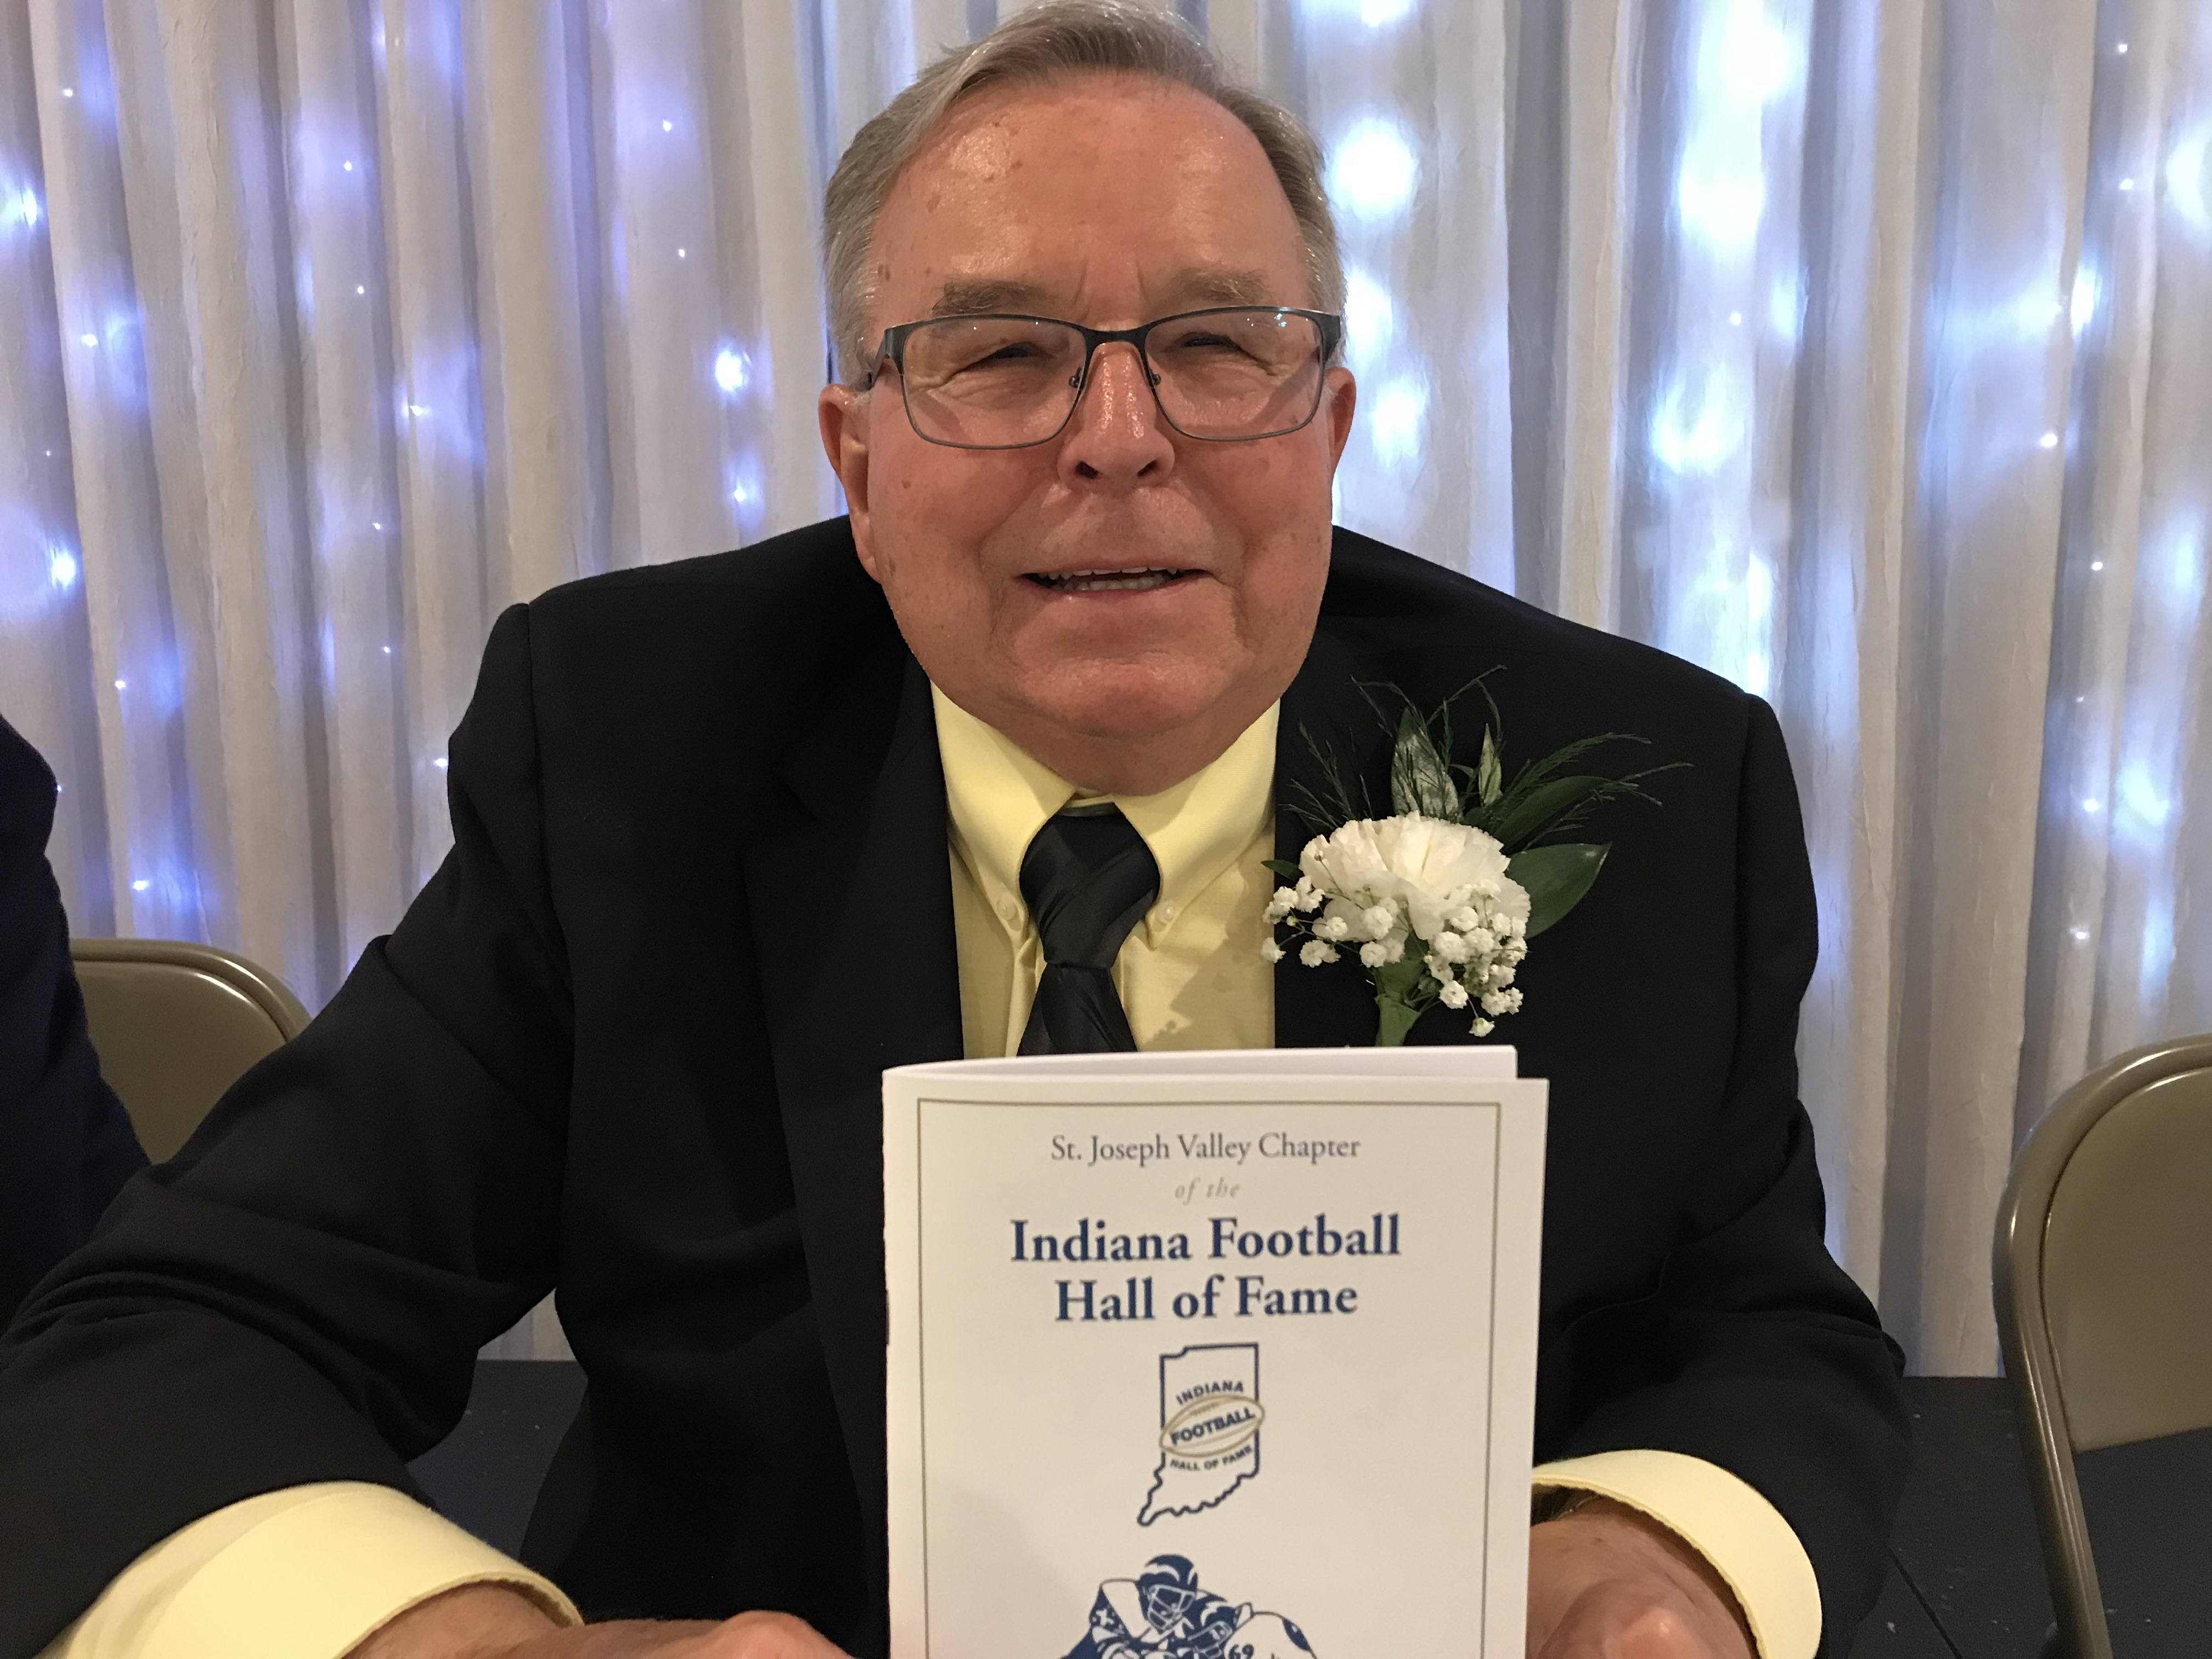 Mishawaka's Dr. Dean Speicher Inducted into Indiana Football Hall of Fame (MSN Video Story)